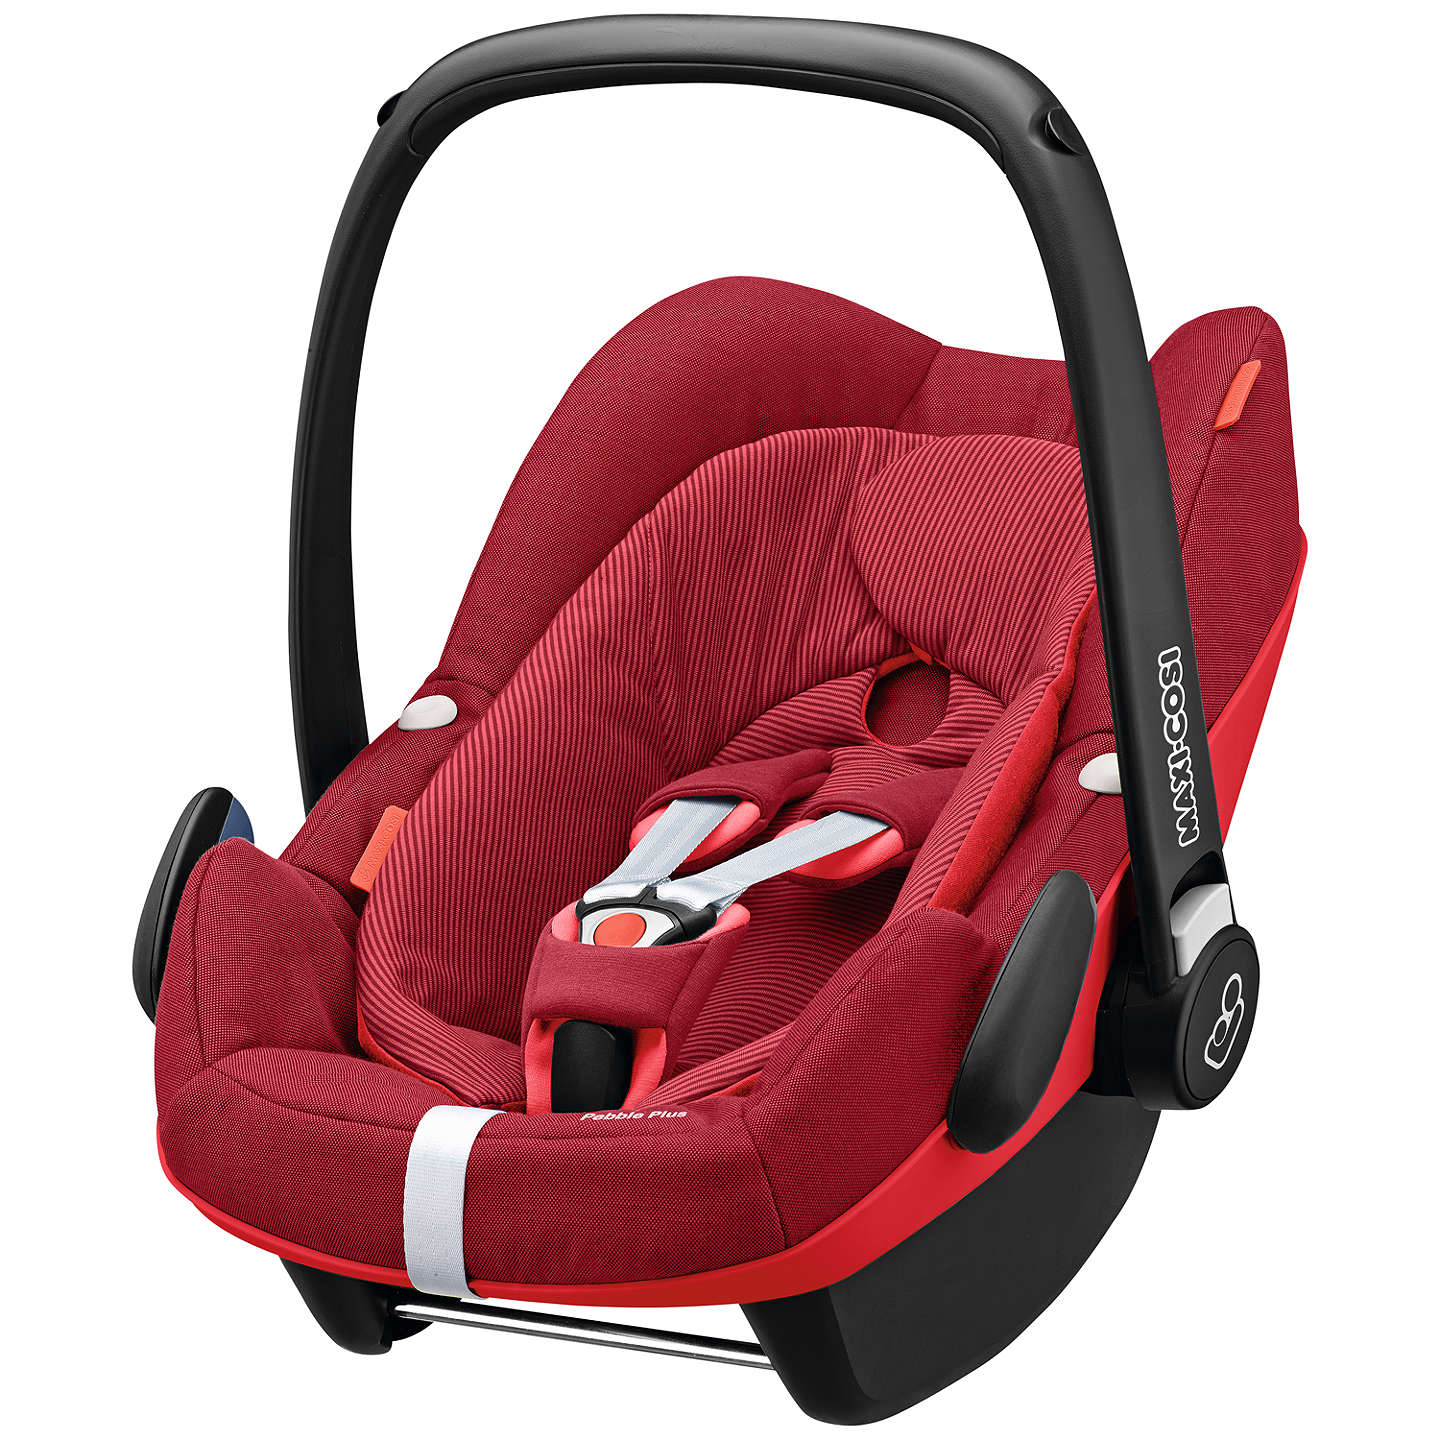 maxi cosi pebble plus i size group 0 baby car seat robin red at john lewis. Black Bedroom Furniture Sets. Home Design Ideas